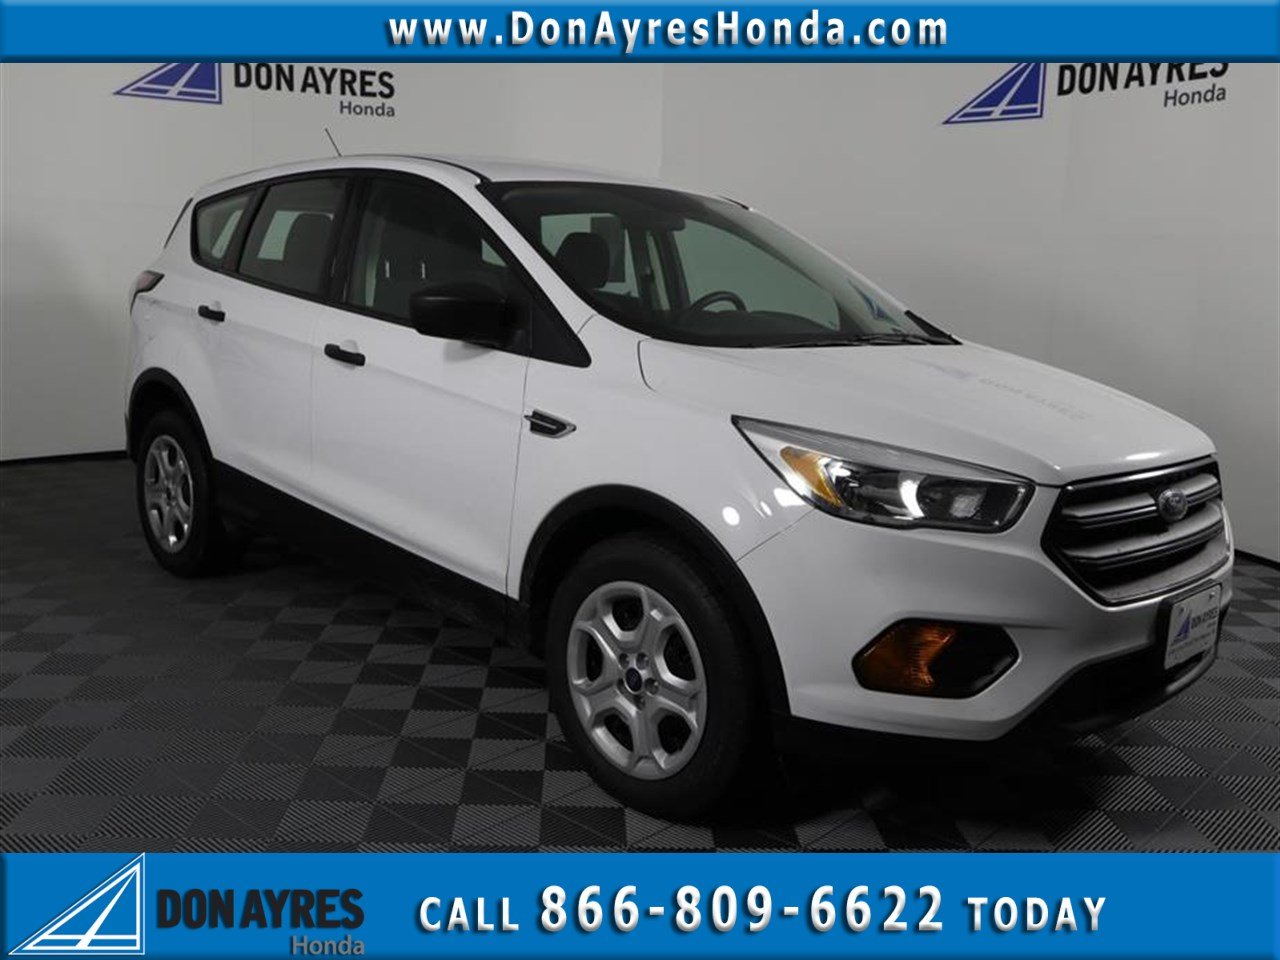 Pre Owned 2017 Ford Escape S 4d Sport Utility Near Fort Wayne P90293 Don Ayres Honda